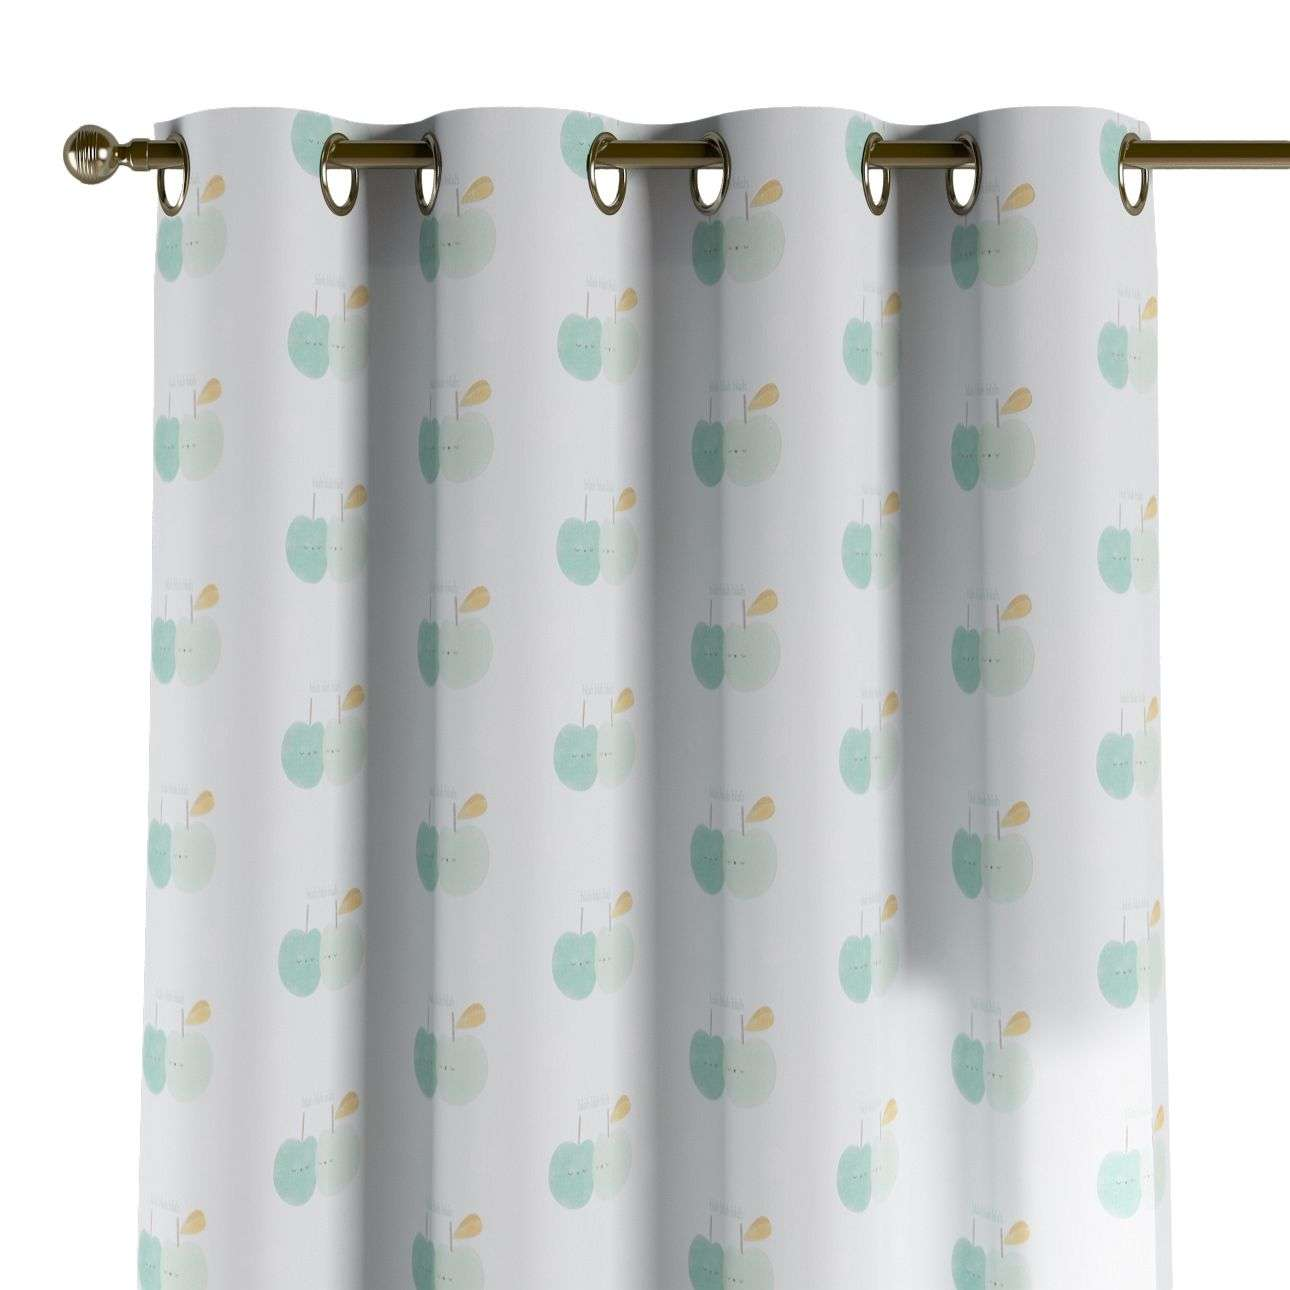 Eyelet curtains 130 x 260 cm (51 x 102 inch) in collection Apanona, fabric: 151-02